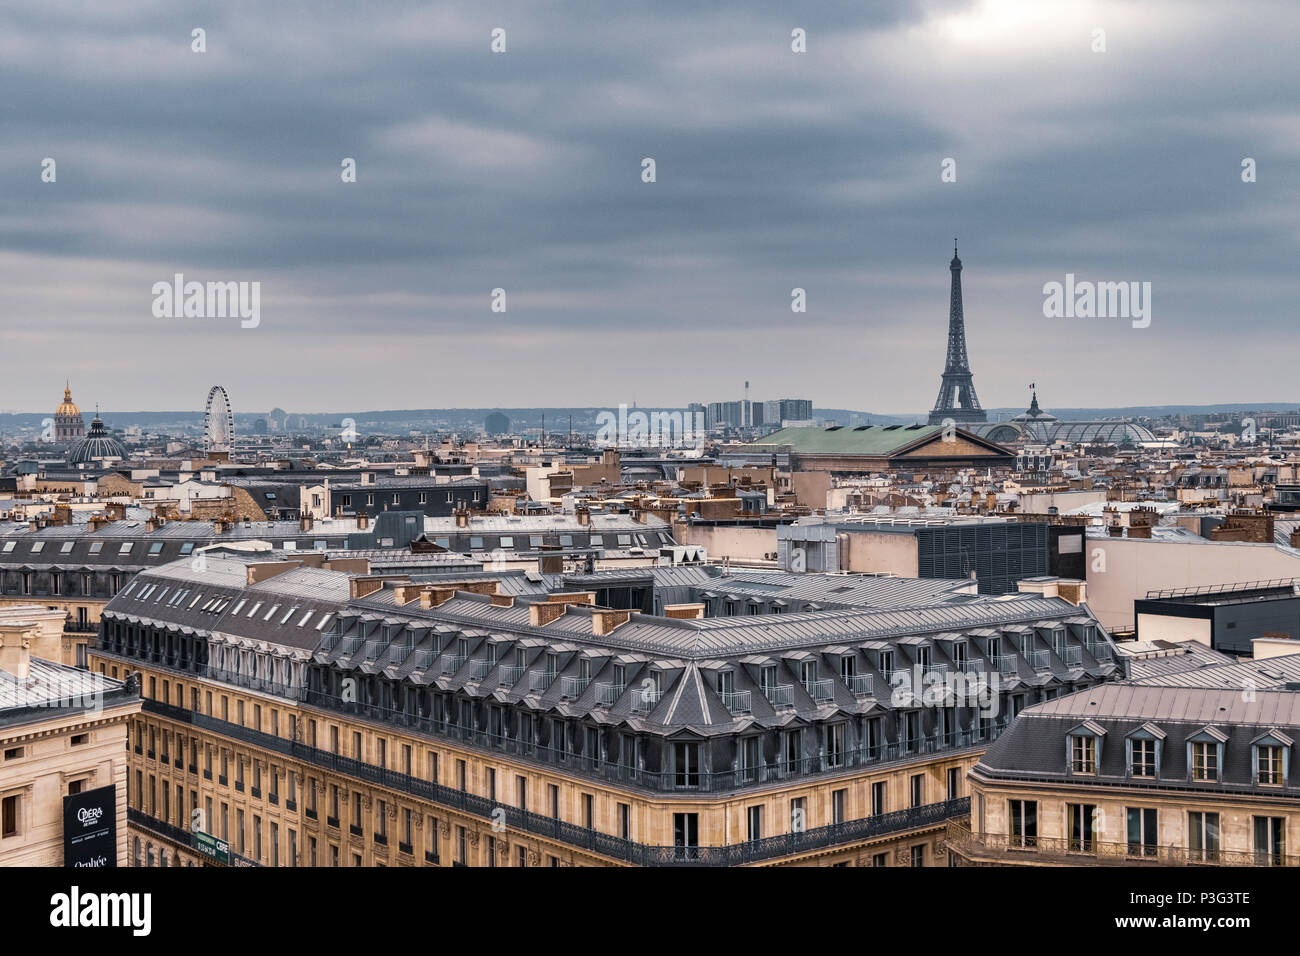 The Eiffel Tower and elegant  grey slate rooftops of Paris apartment buildings a running balcony and attic rooms, Boulevard Haussmann ,Paris ,France - Stock Image